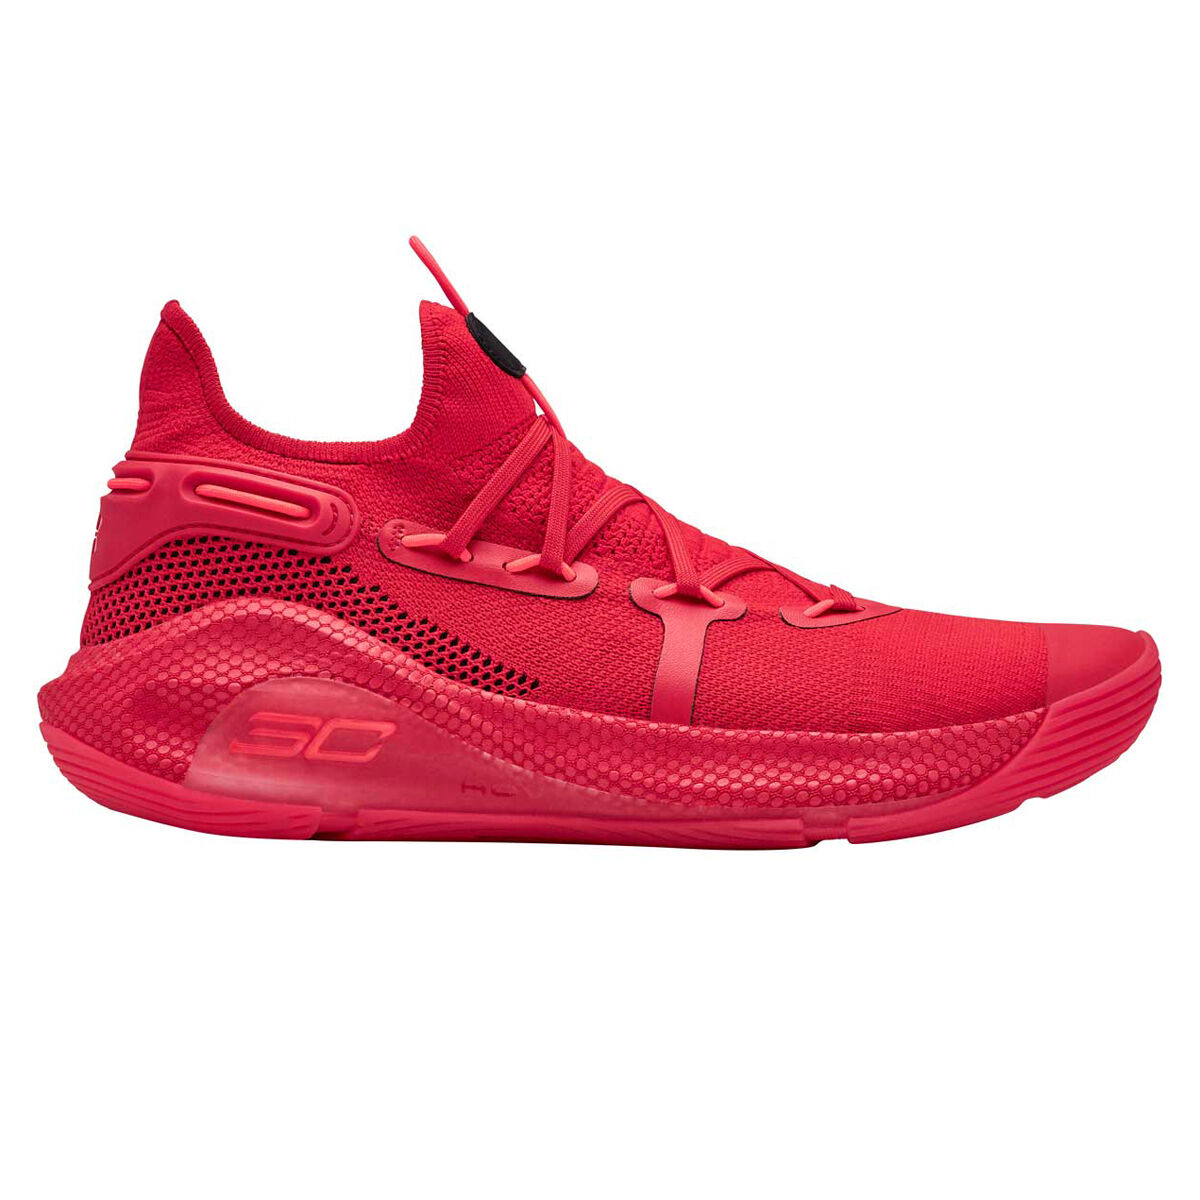 Under Armour Curry 6 Mens Basketball Shoes Red Black US 11.5